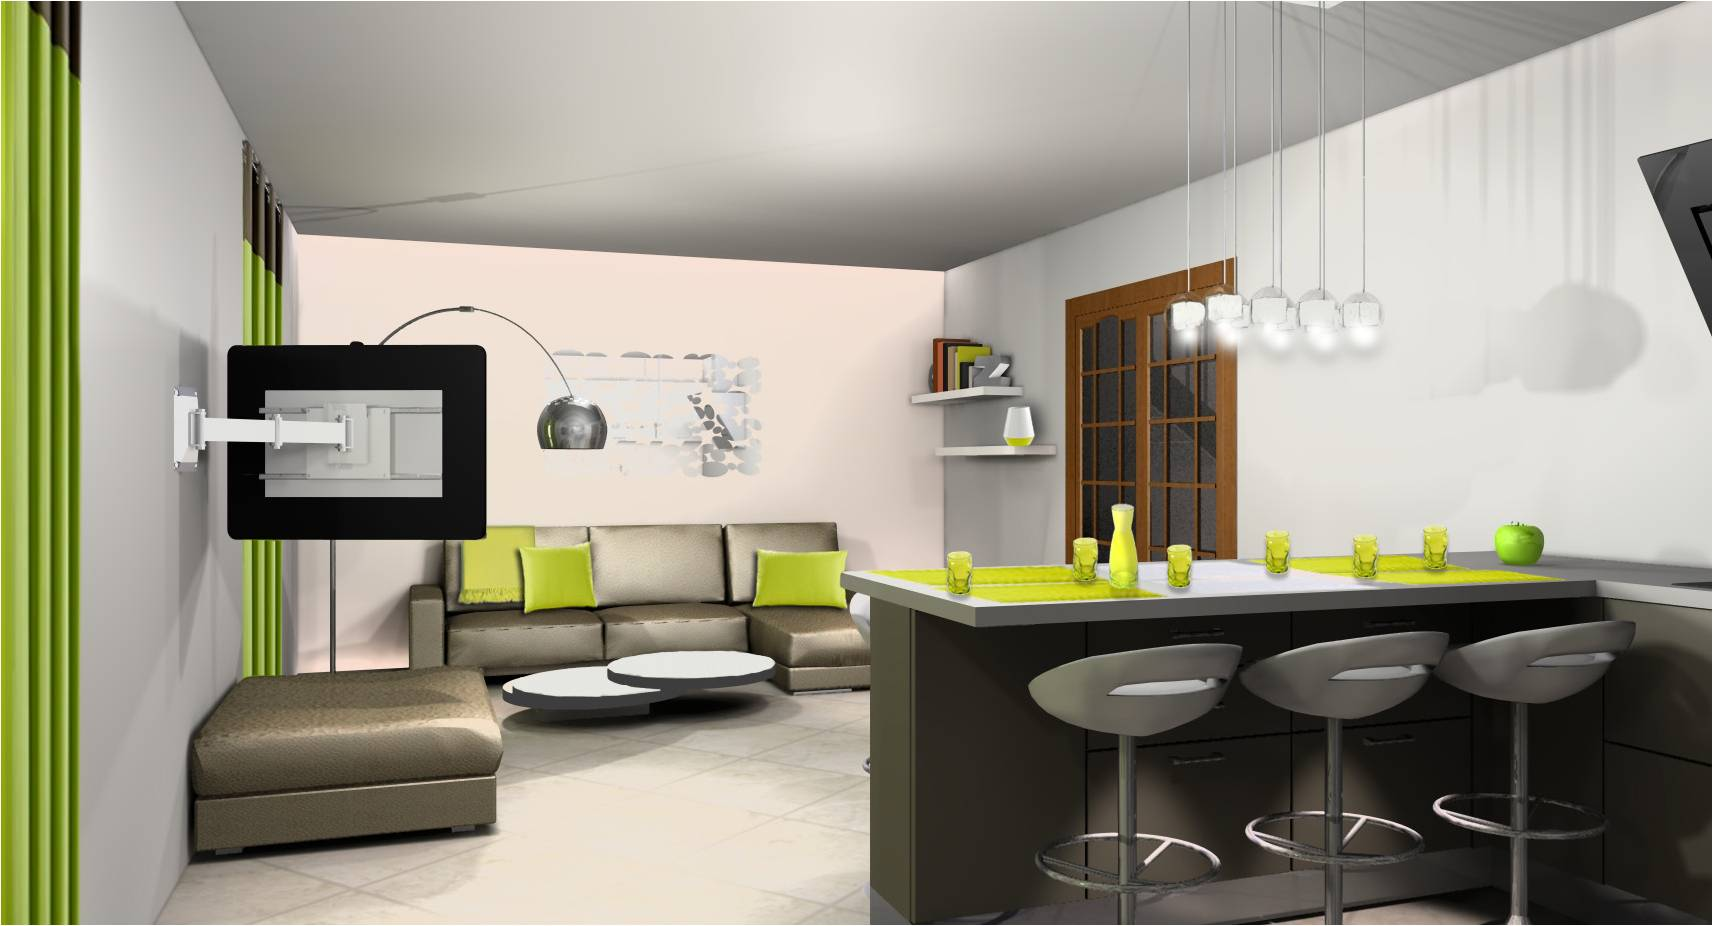 D co cuisine americaine exemples d 39 am nagements for Amenagement salon cuisine ouverte 35m2